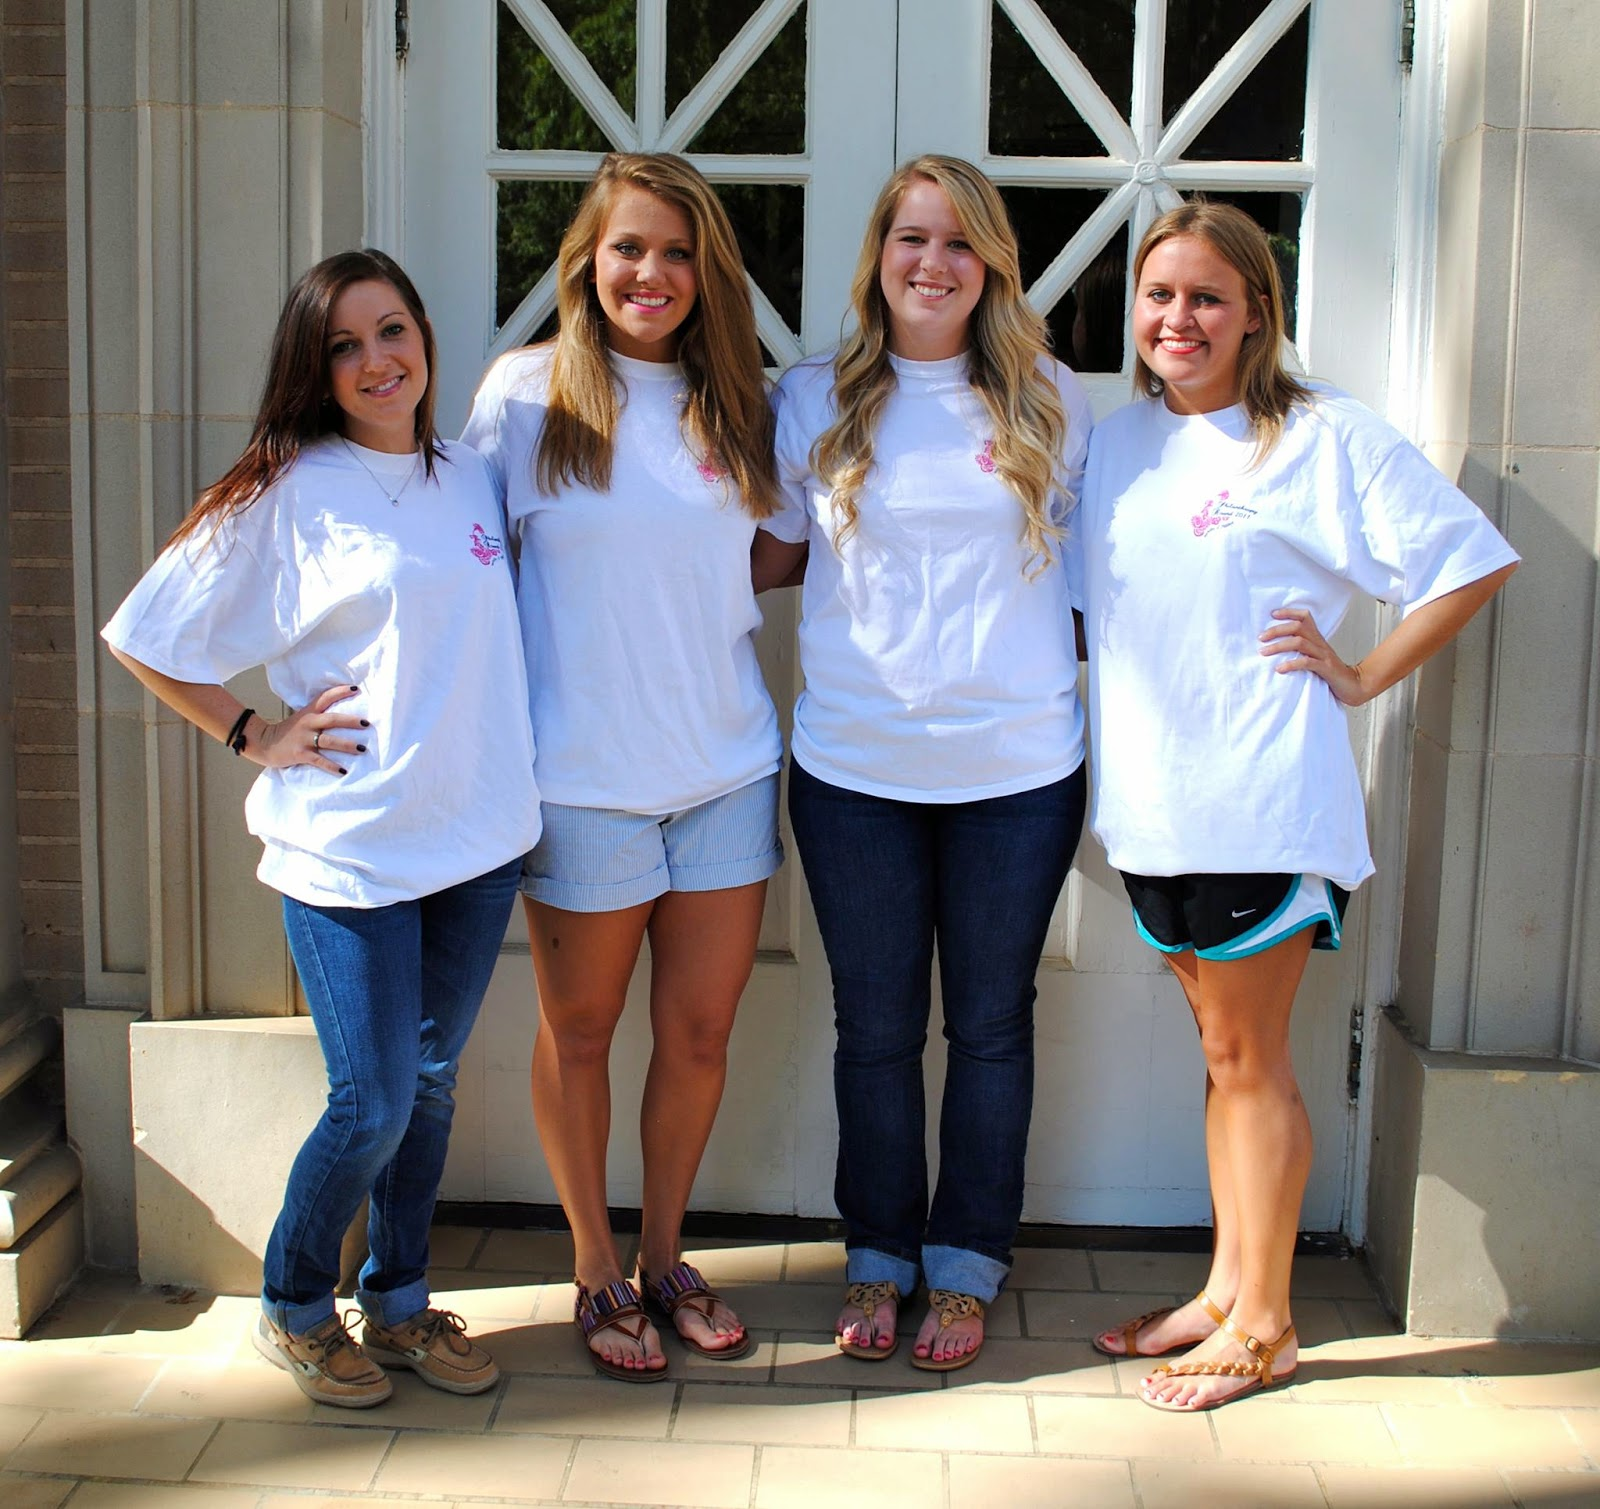 Ole sorority miss recruitment what to wear images